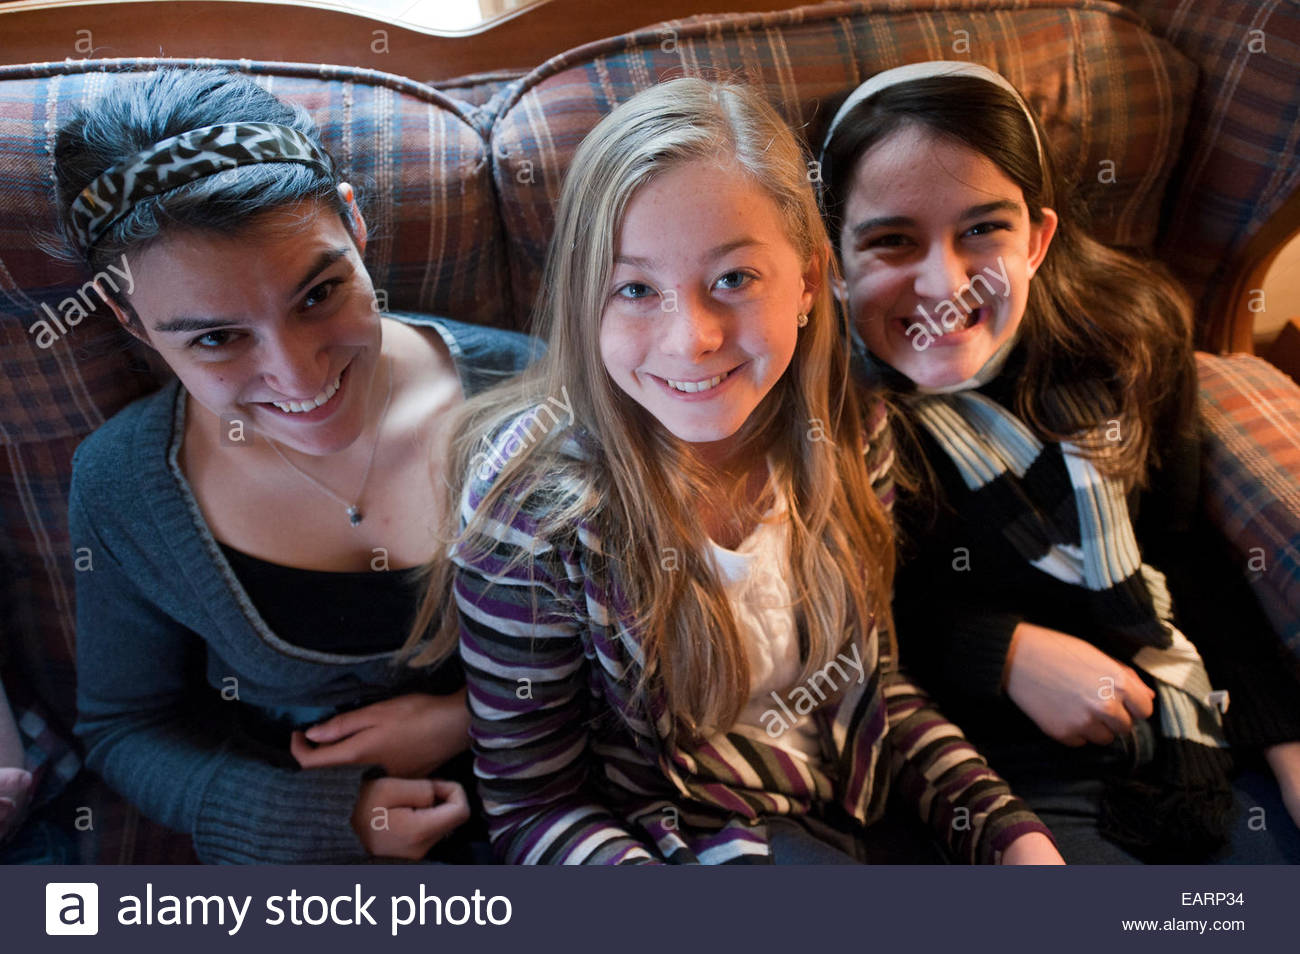 Cousins spend time together over the holidays. - Stock Image